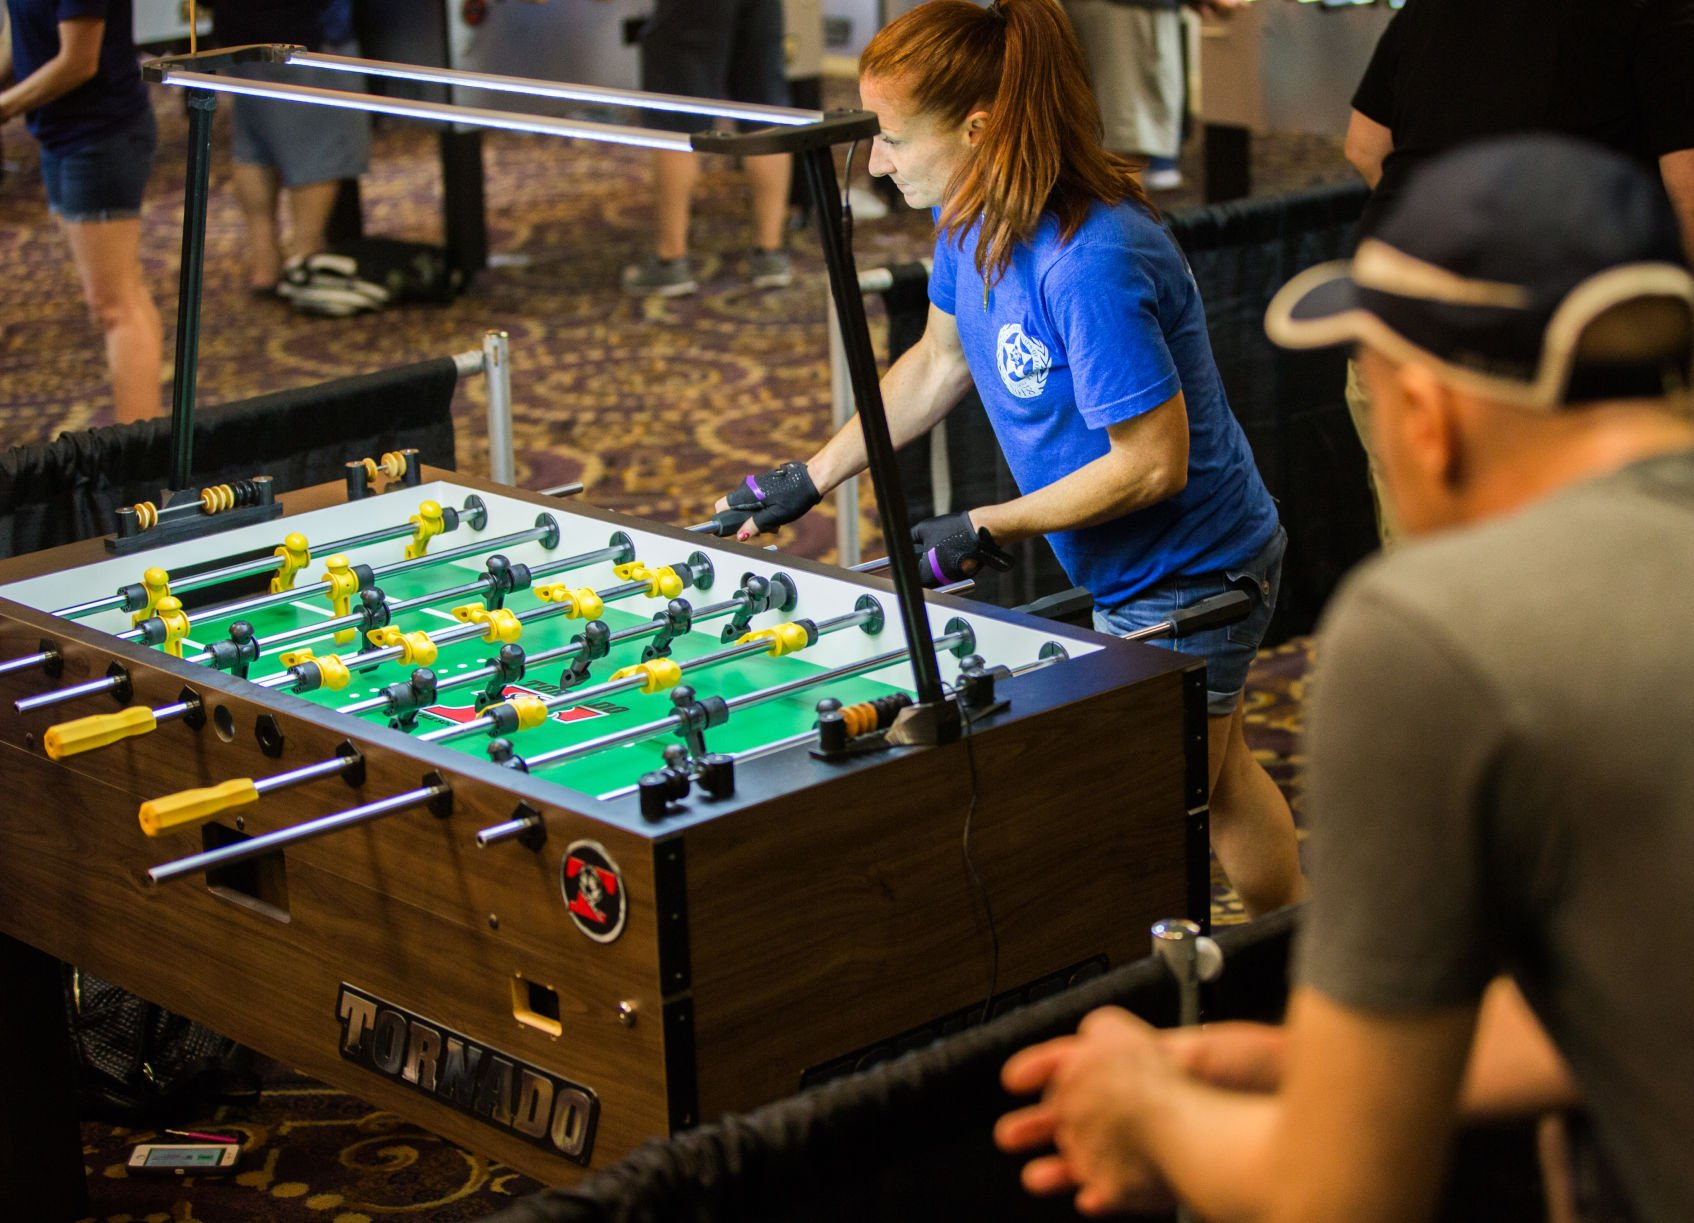 foosball is still kickin with a big return among fans who fell in rh theadvocate com